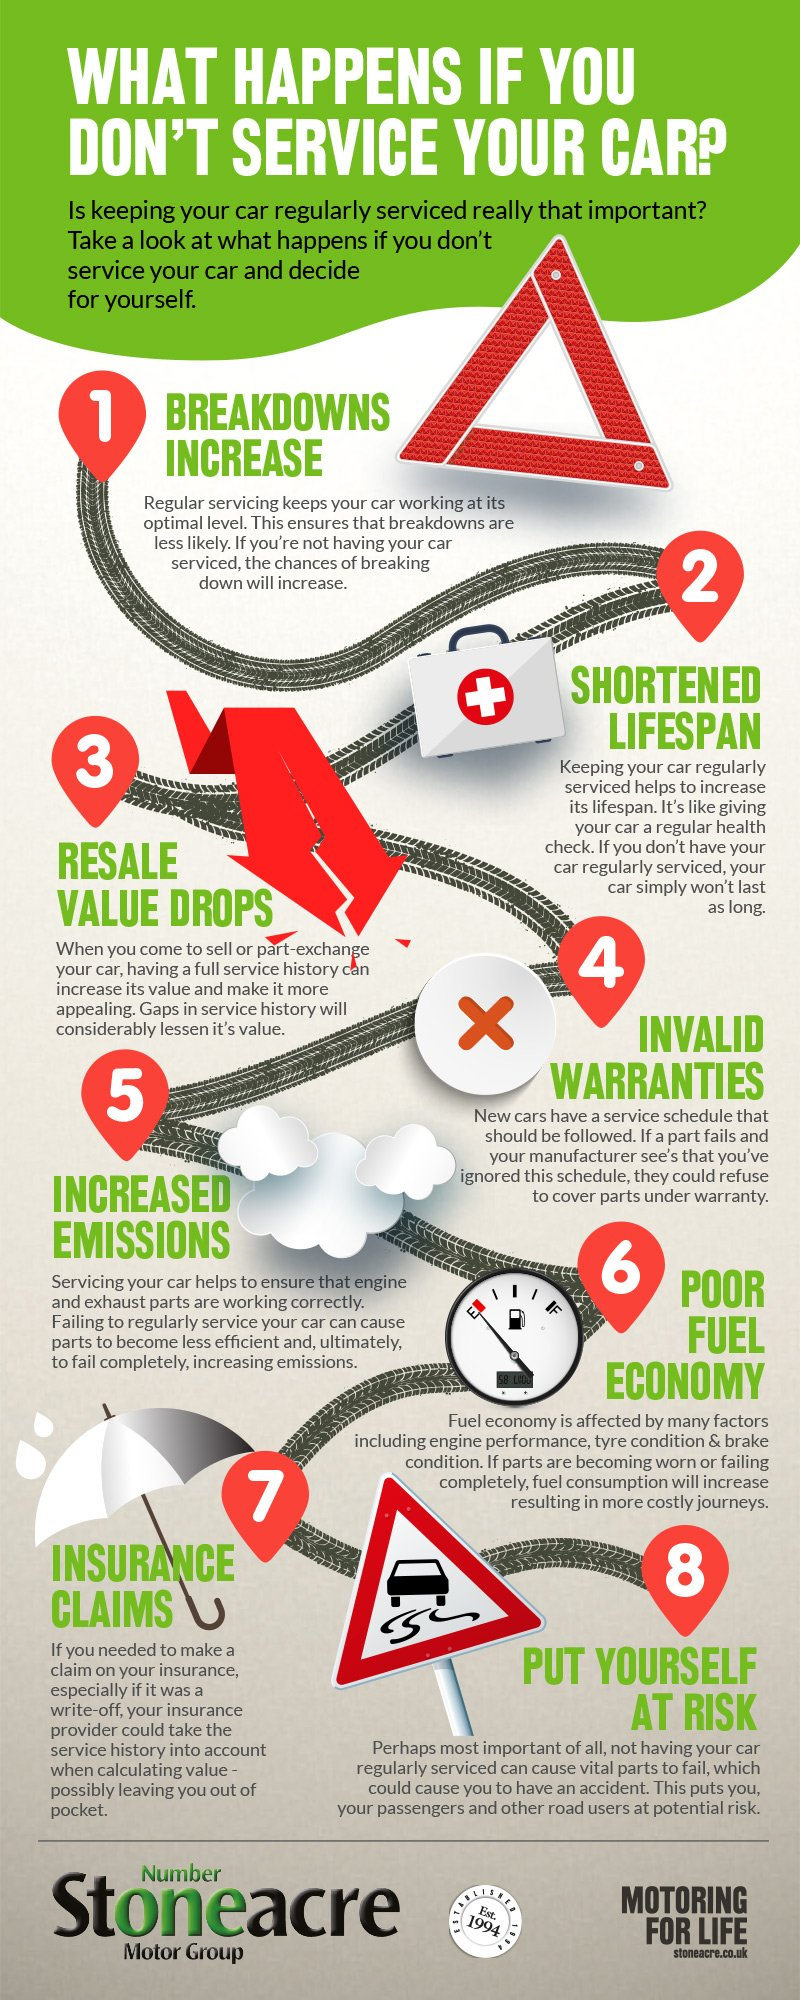 A useful infographic about what happens if you don't service your car.